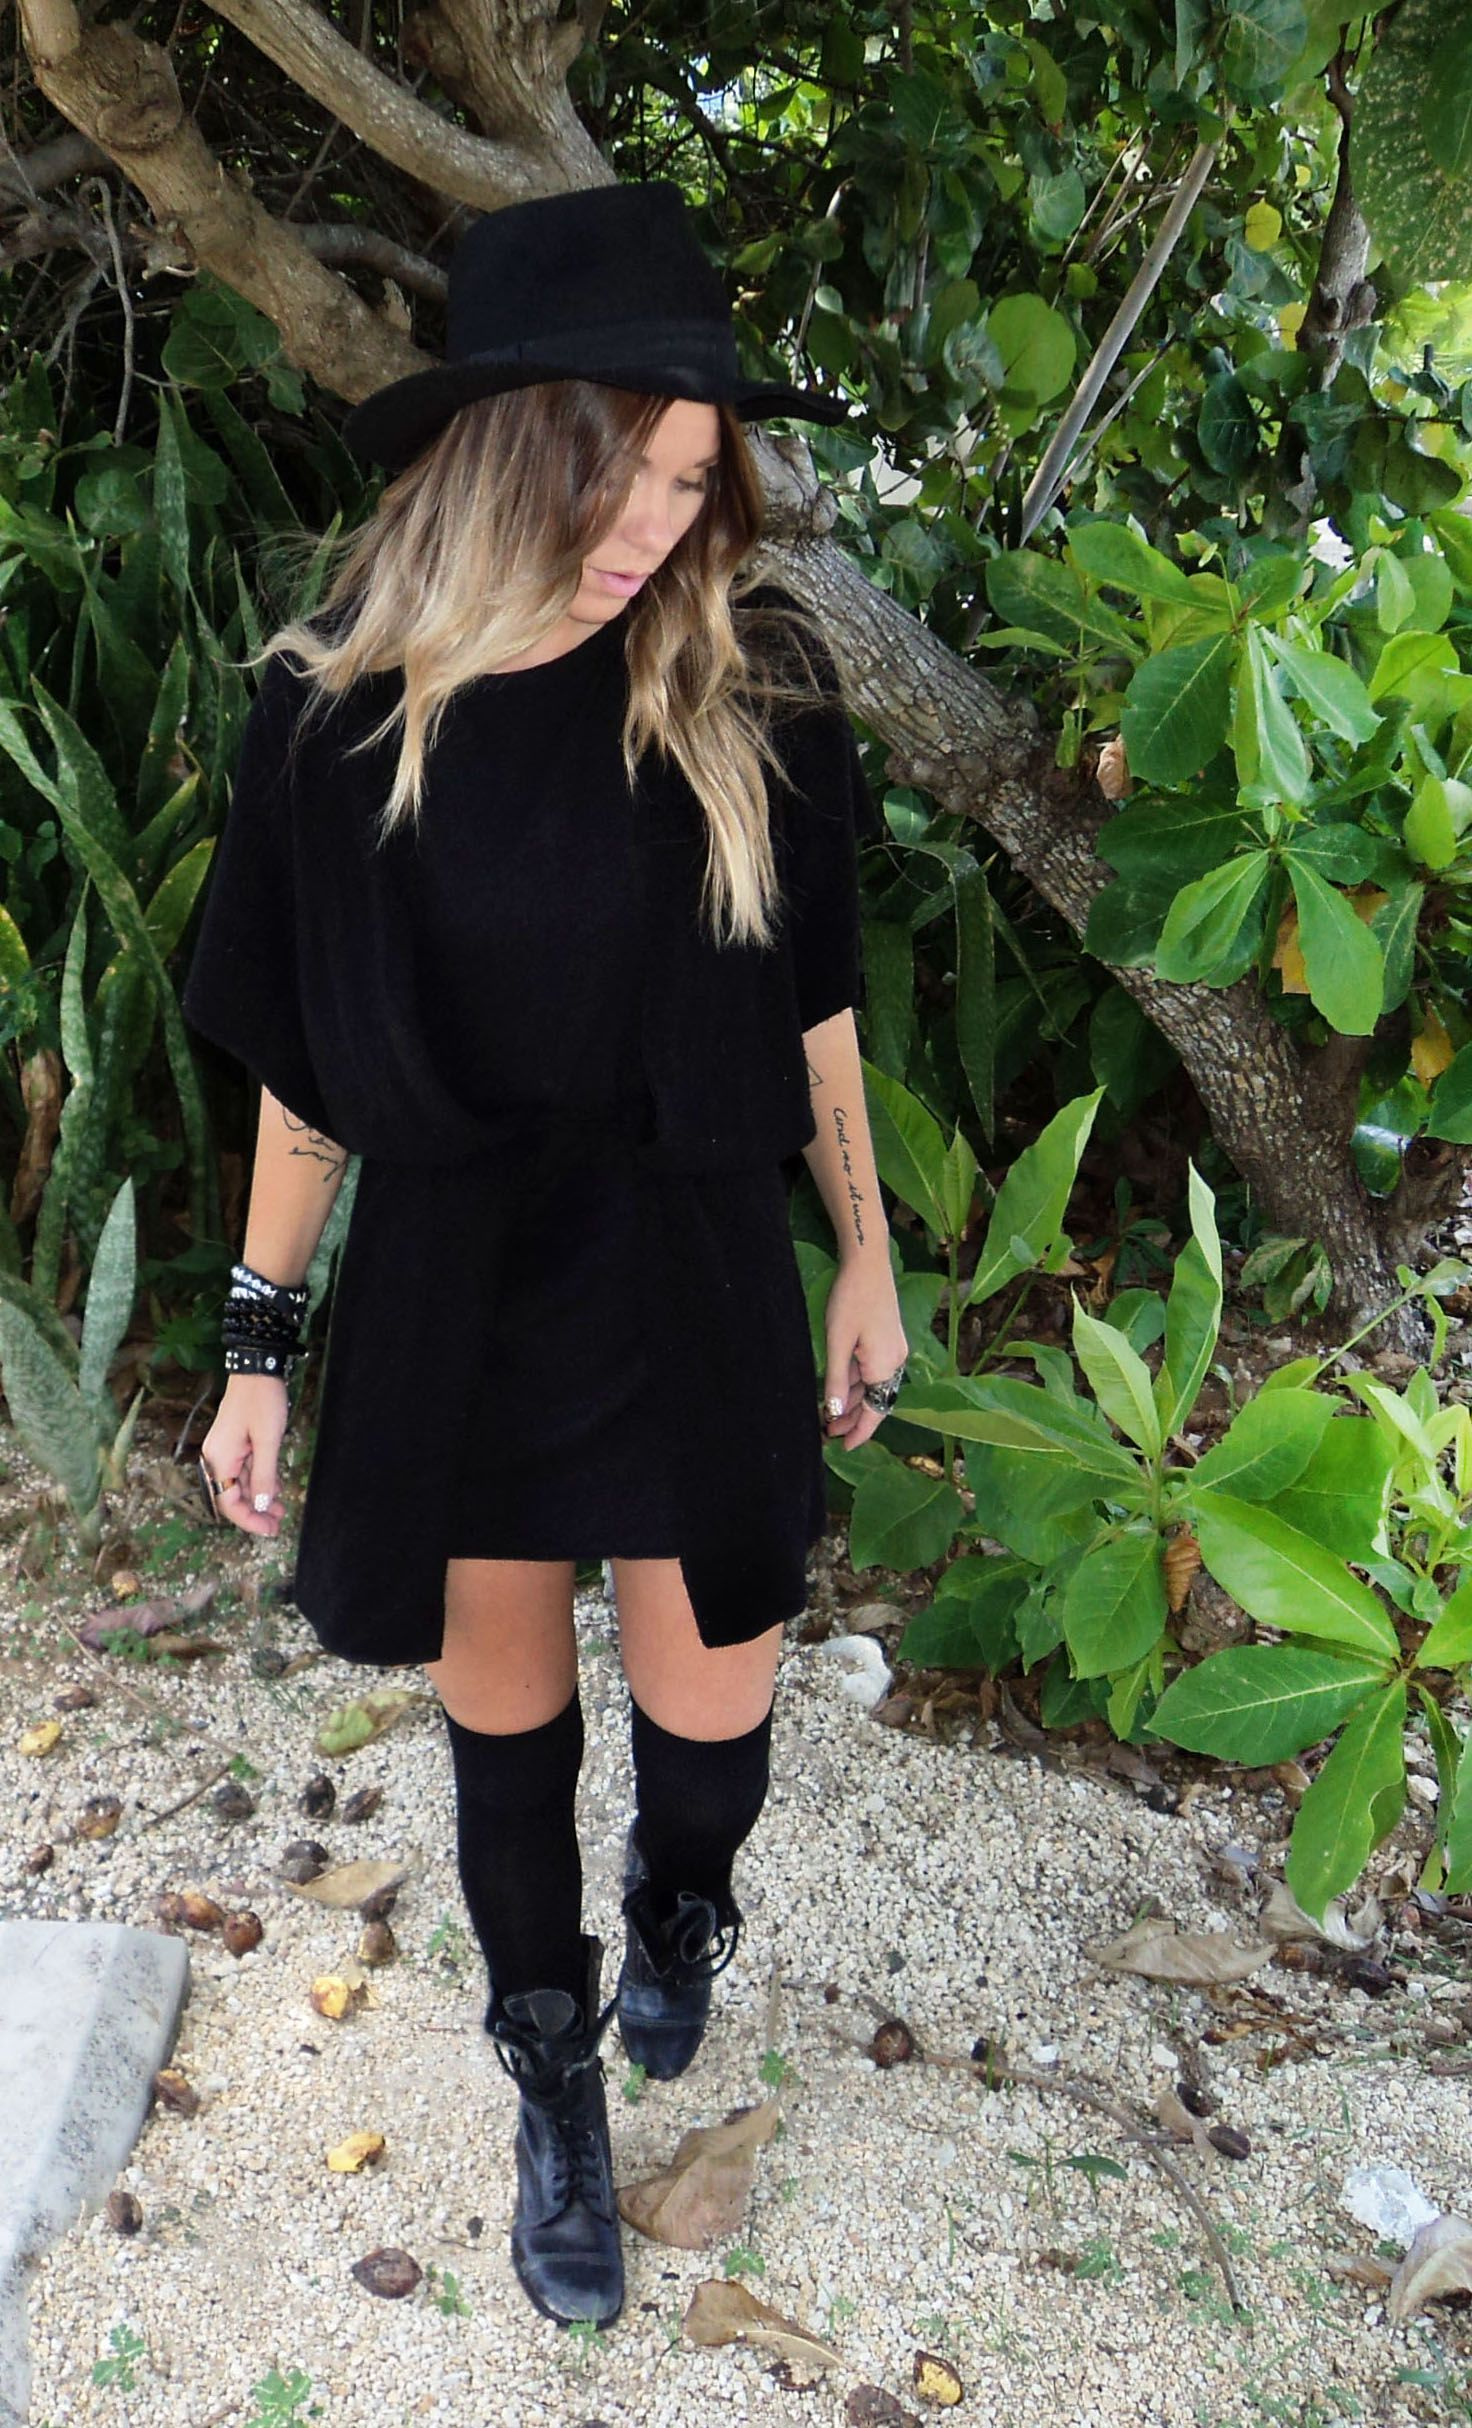 Bewolf blog hatknee highsbootsdress poncho fashion